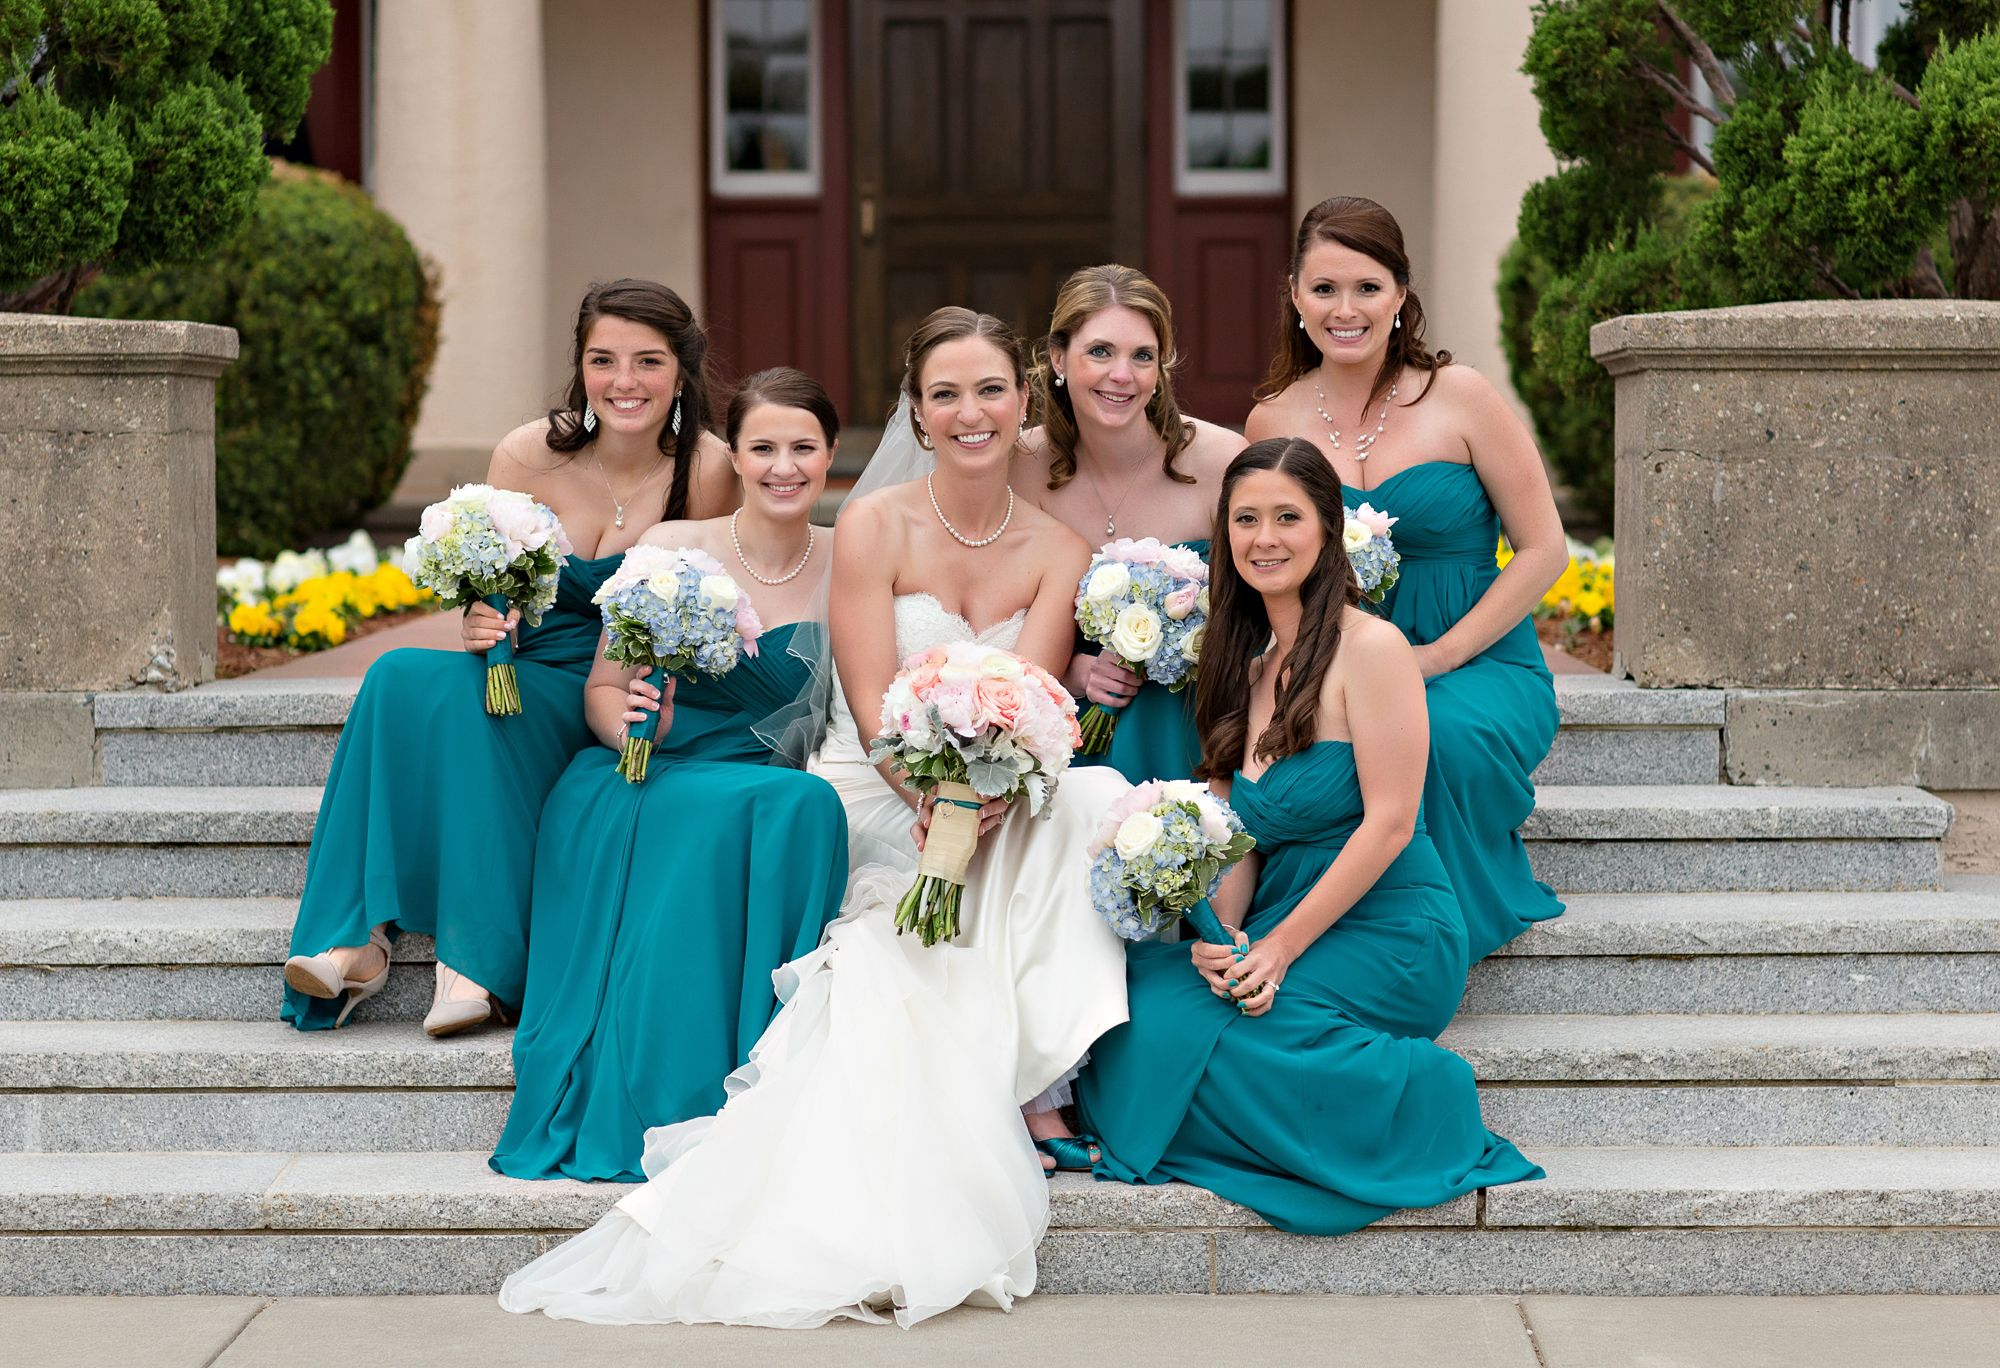 Chiffon bill levkoff gowns in oasis bridesmaid sept 2015 chiffon bill levkoff gowns in oasis bridesmaid sept 2015 ombrellifo Choice Image